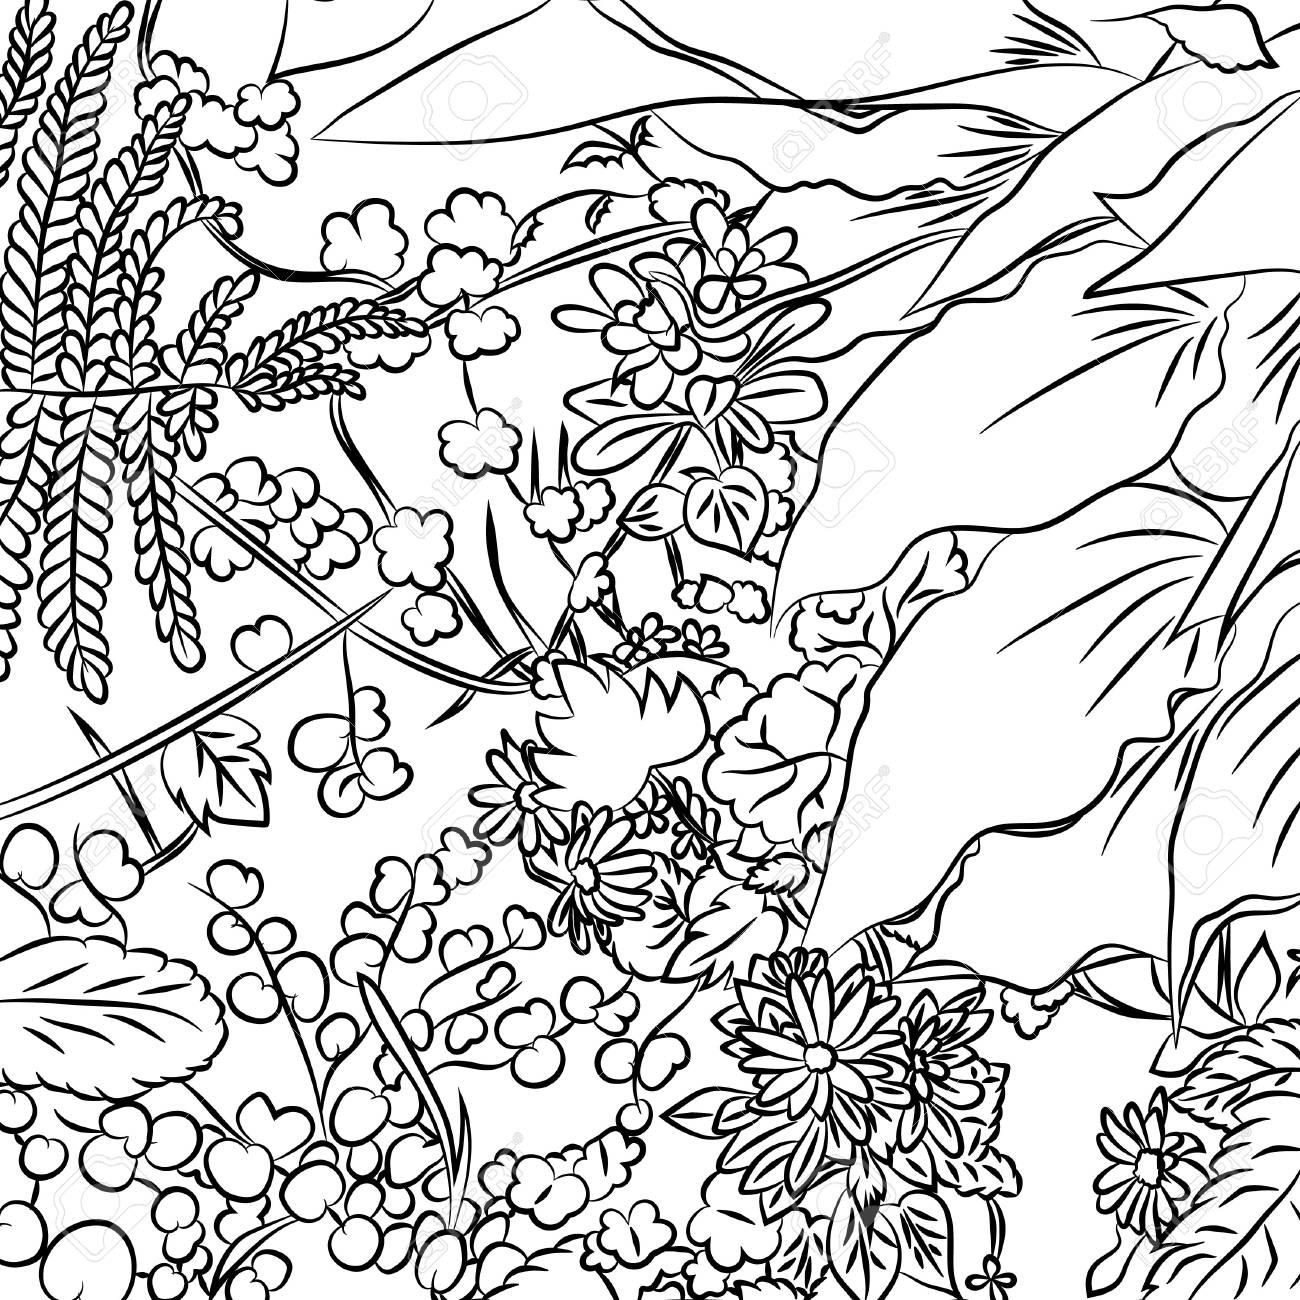 Structure Of Flowers And Plant Leaves Vector Illustration Anime Black Outline On